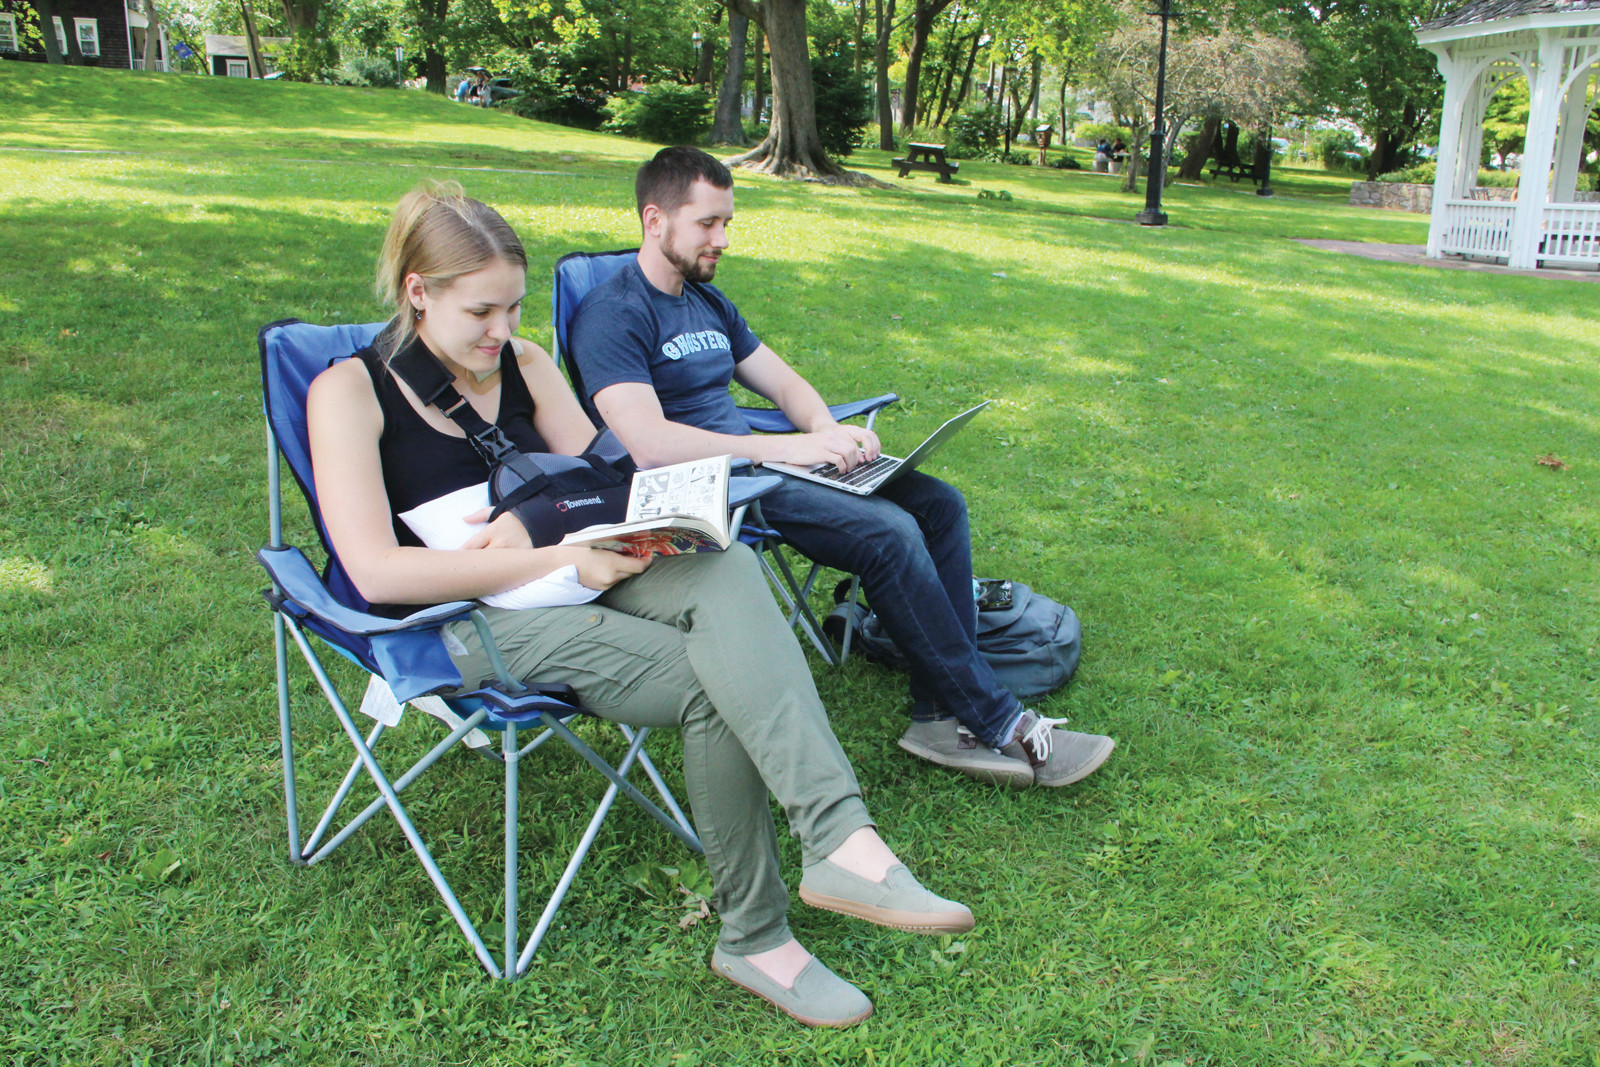 TWO FORMS OF PRINT: Amy Elsberger and Dave Counts found Pawtuxet Park as a good spot to do some book and computer screen reading Sunday.